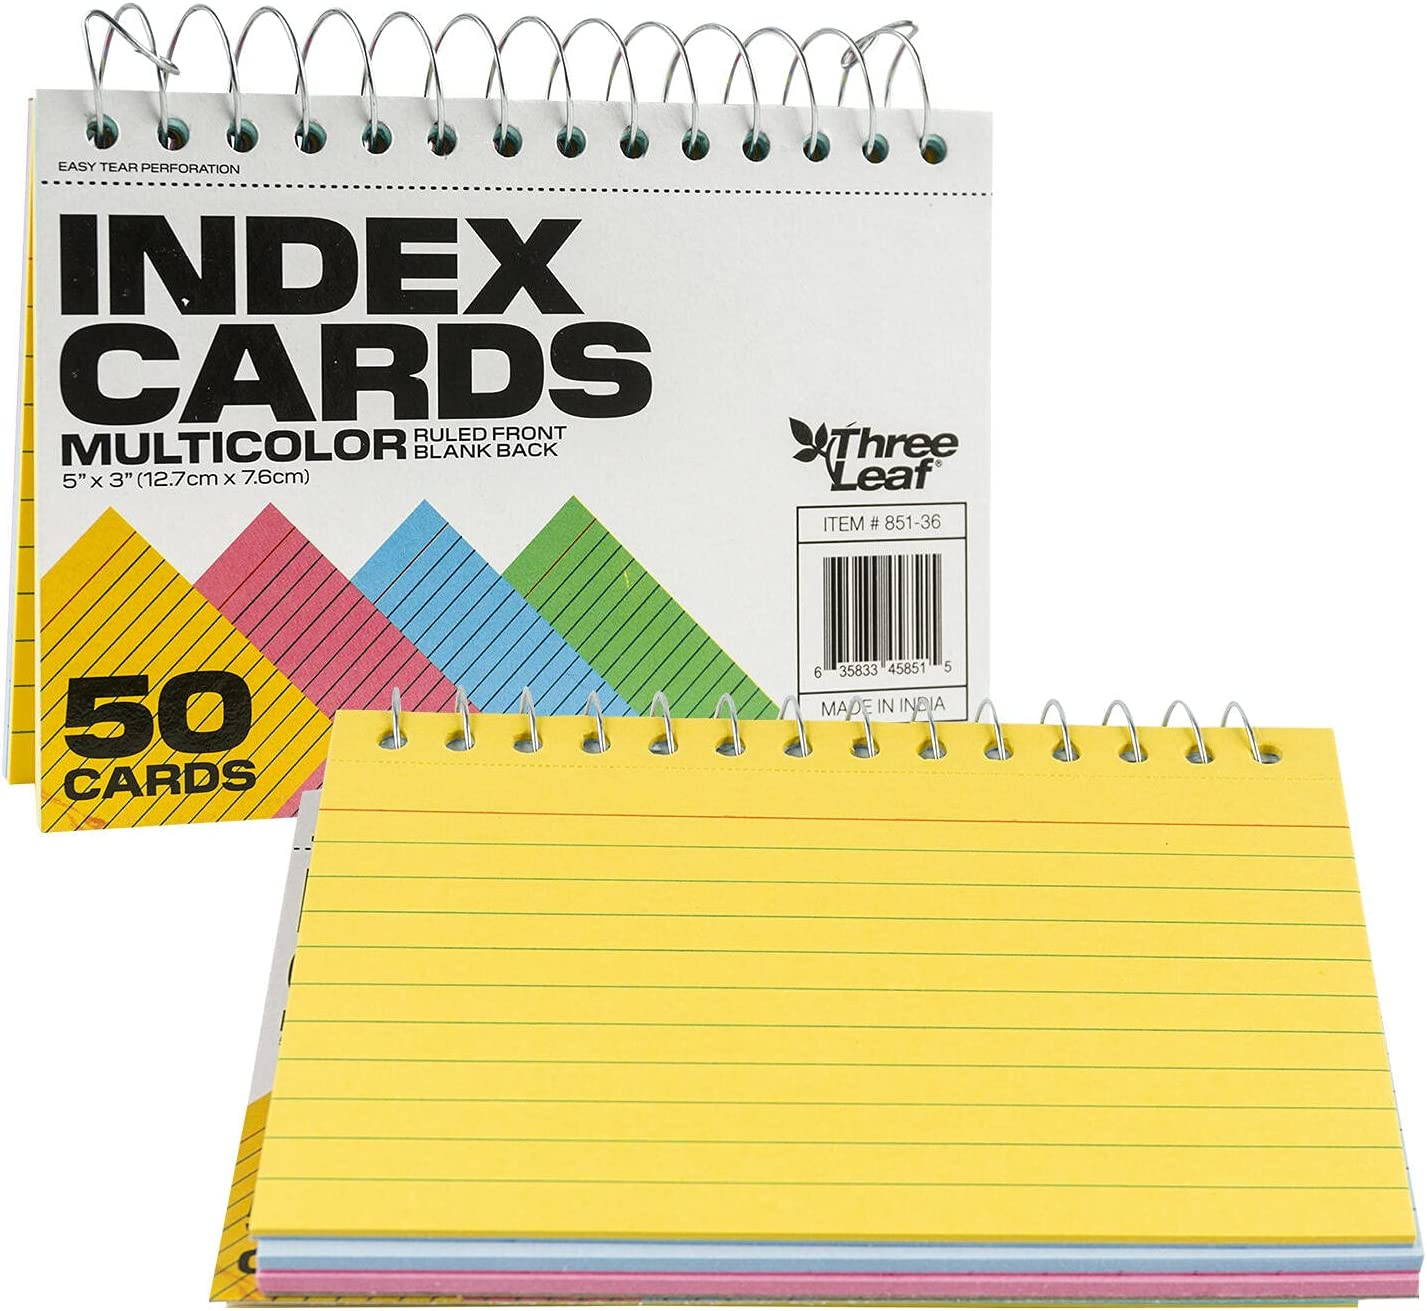 Spiral Bound Colored Index Card Popularity 3x5-Inch Perforat Ranking TOP8 Ruled Books